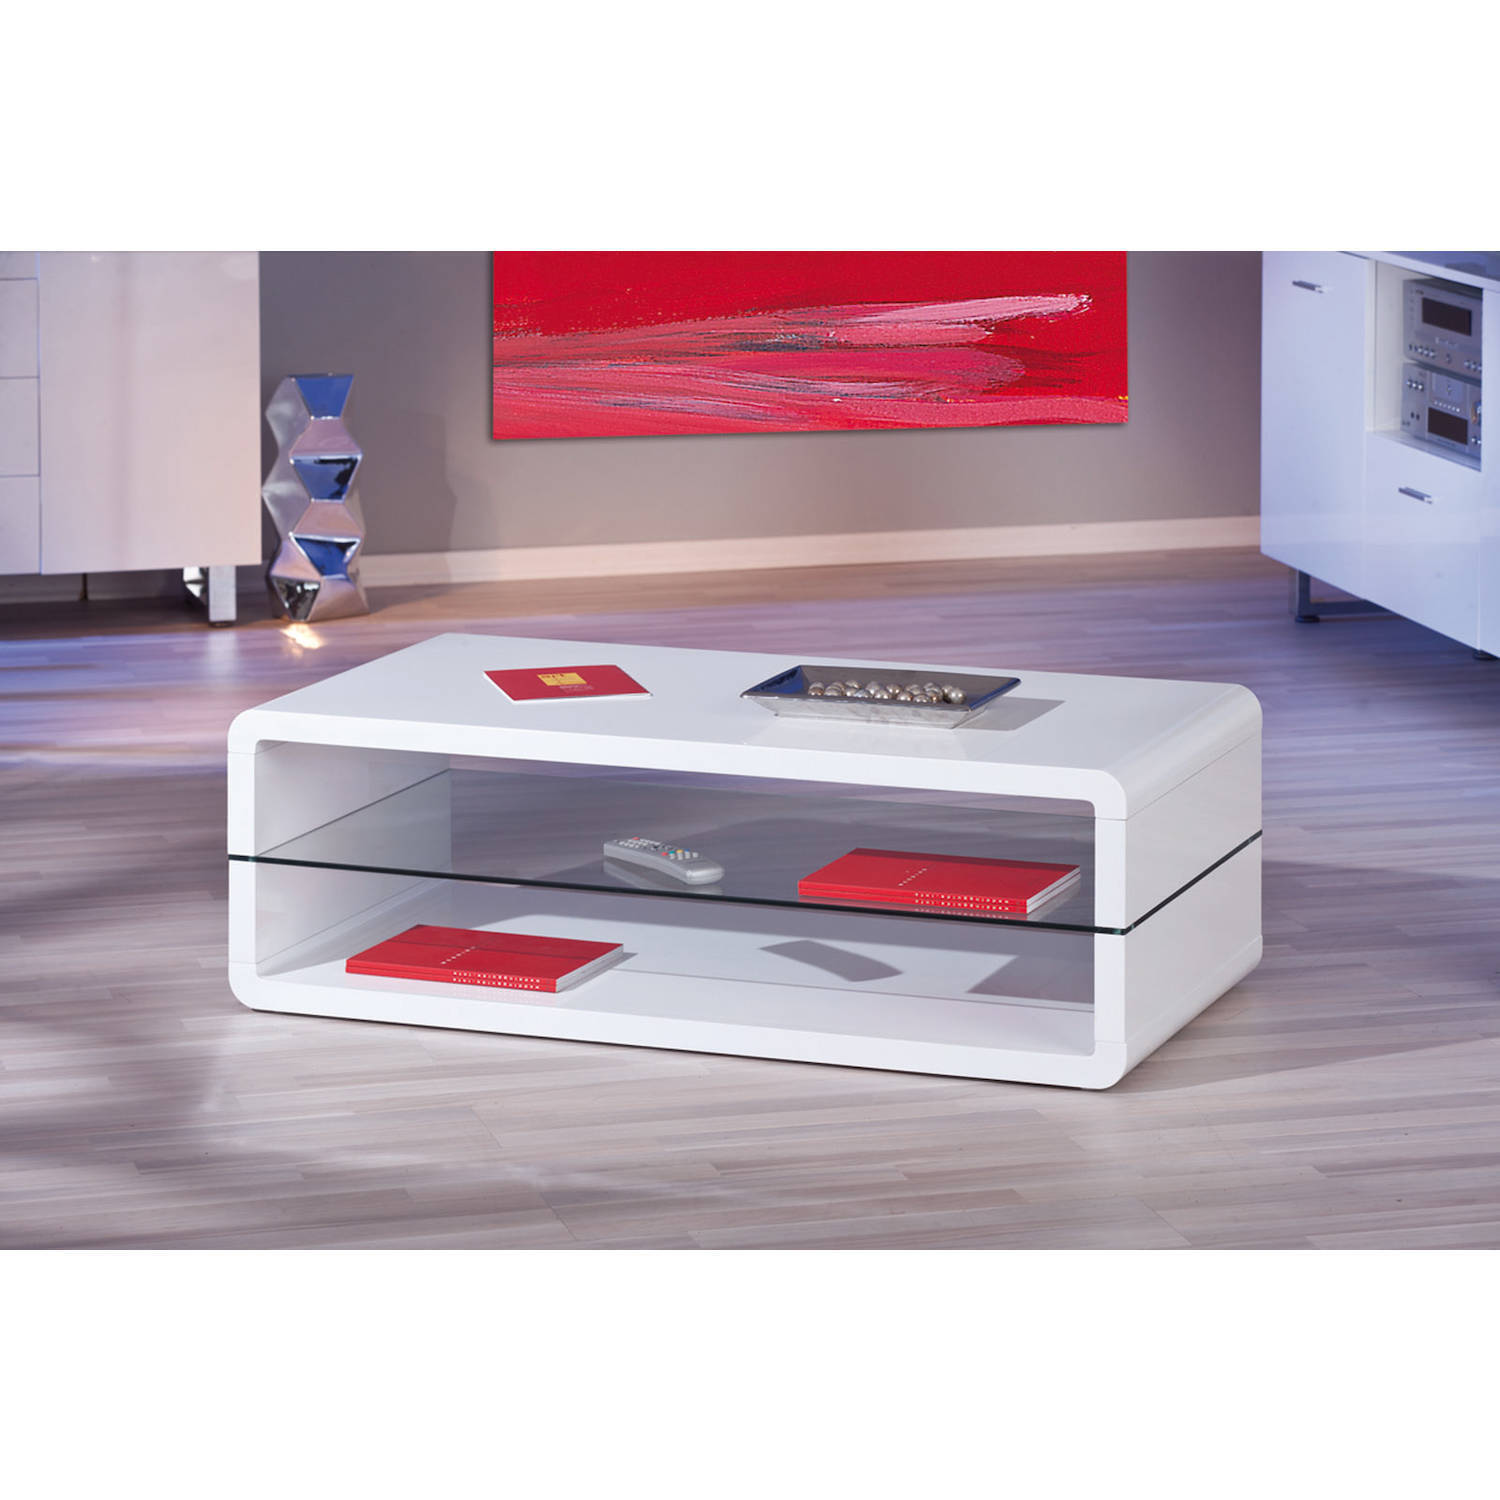 Table basse de salon moderne - Table basse salon moderne ...